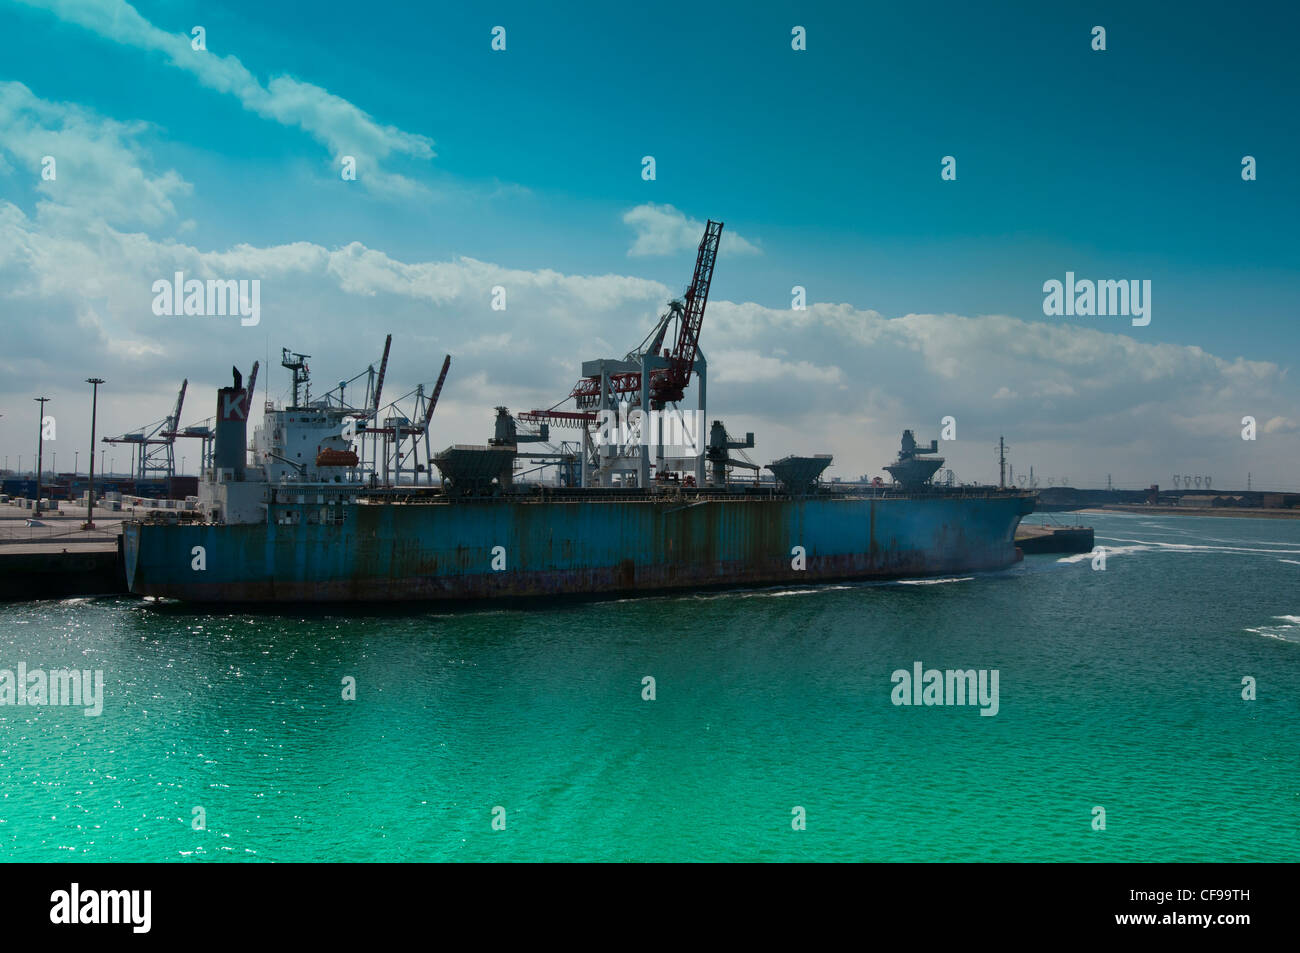 docking ferry at Dunquerque harbour, France, Europe - Stock Image